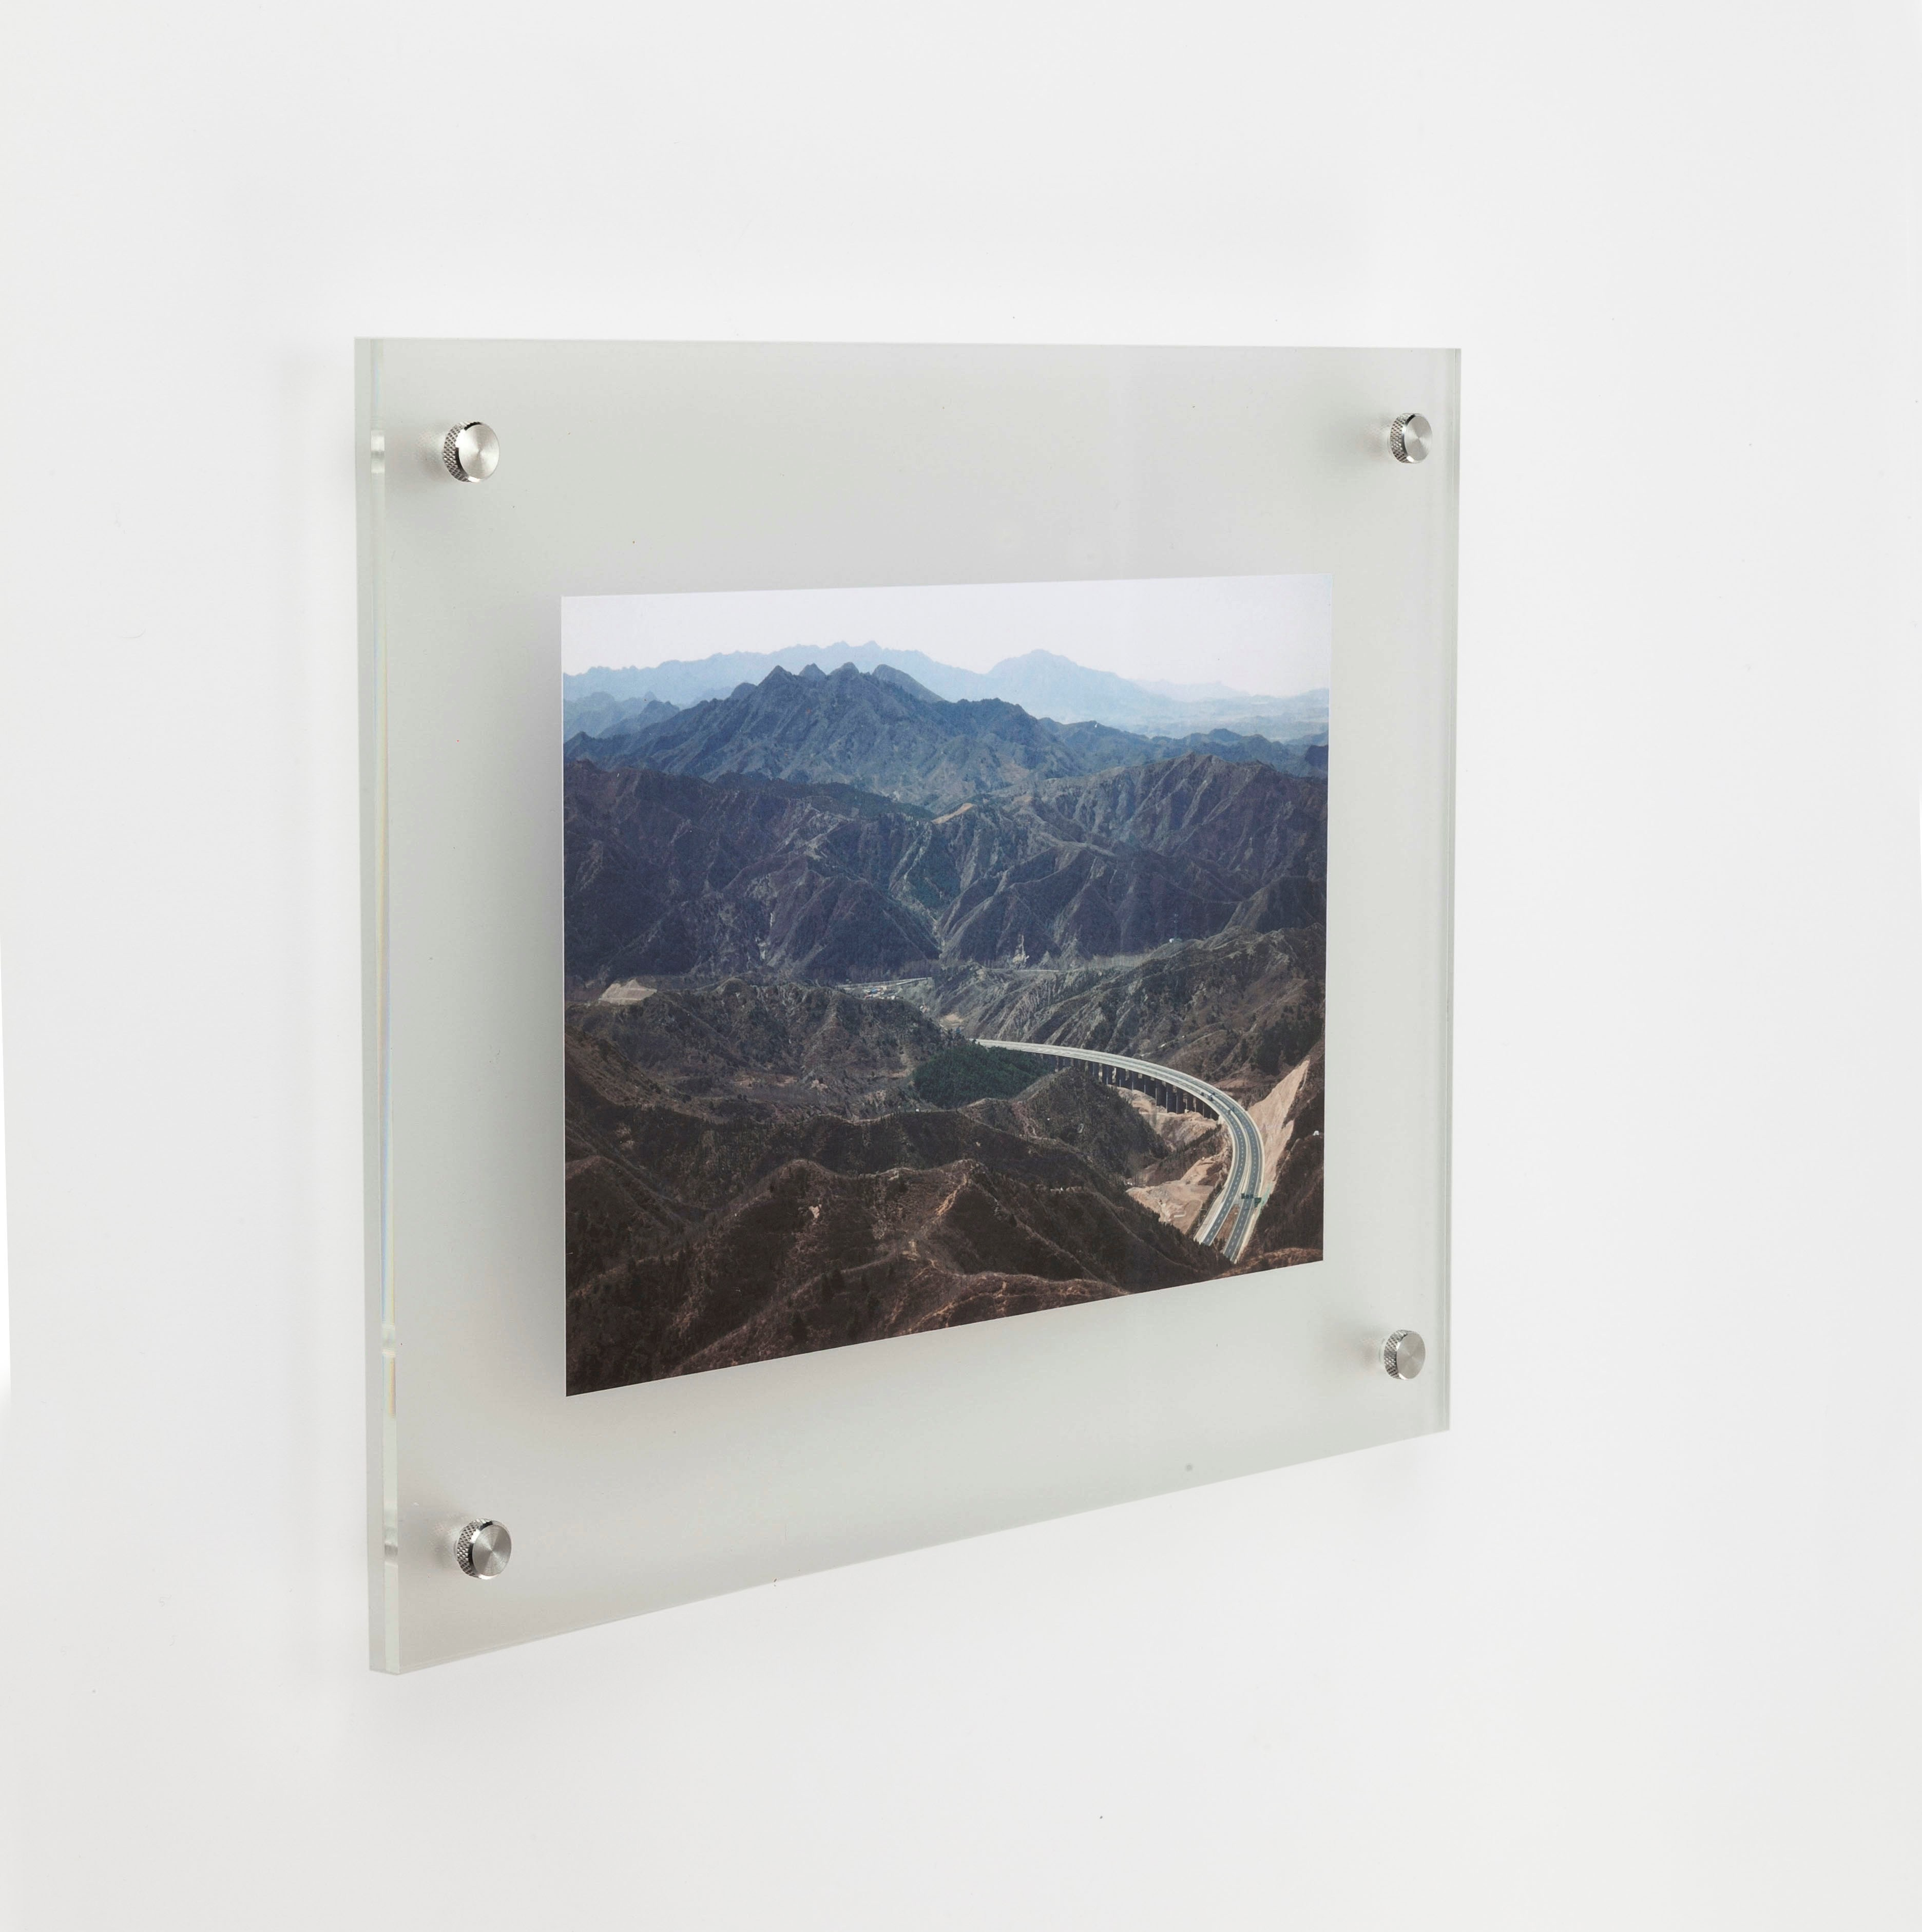 Wholesale Clear Acrylic Picture Photo Frame Photo Frame Glass Buy Wholesale Clear Acrylic Picture Photo Frame Acrylic Picture Photo Frame Photo Frame Glass Product On Alibaba Com